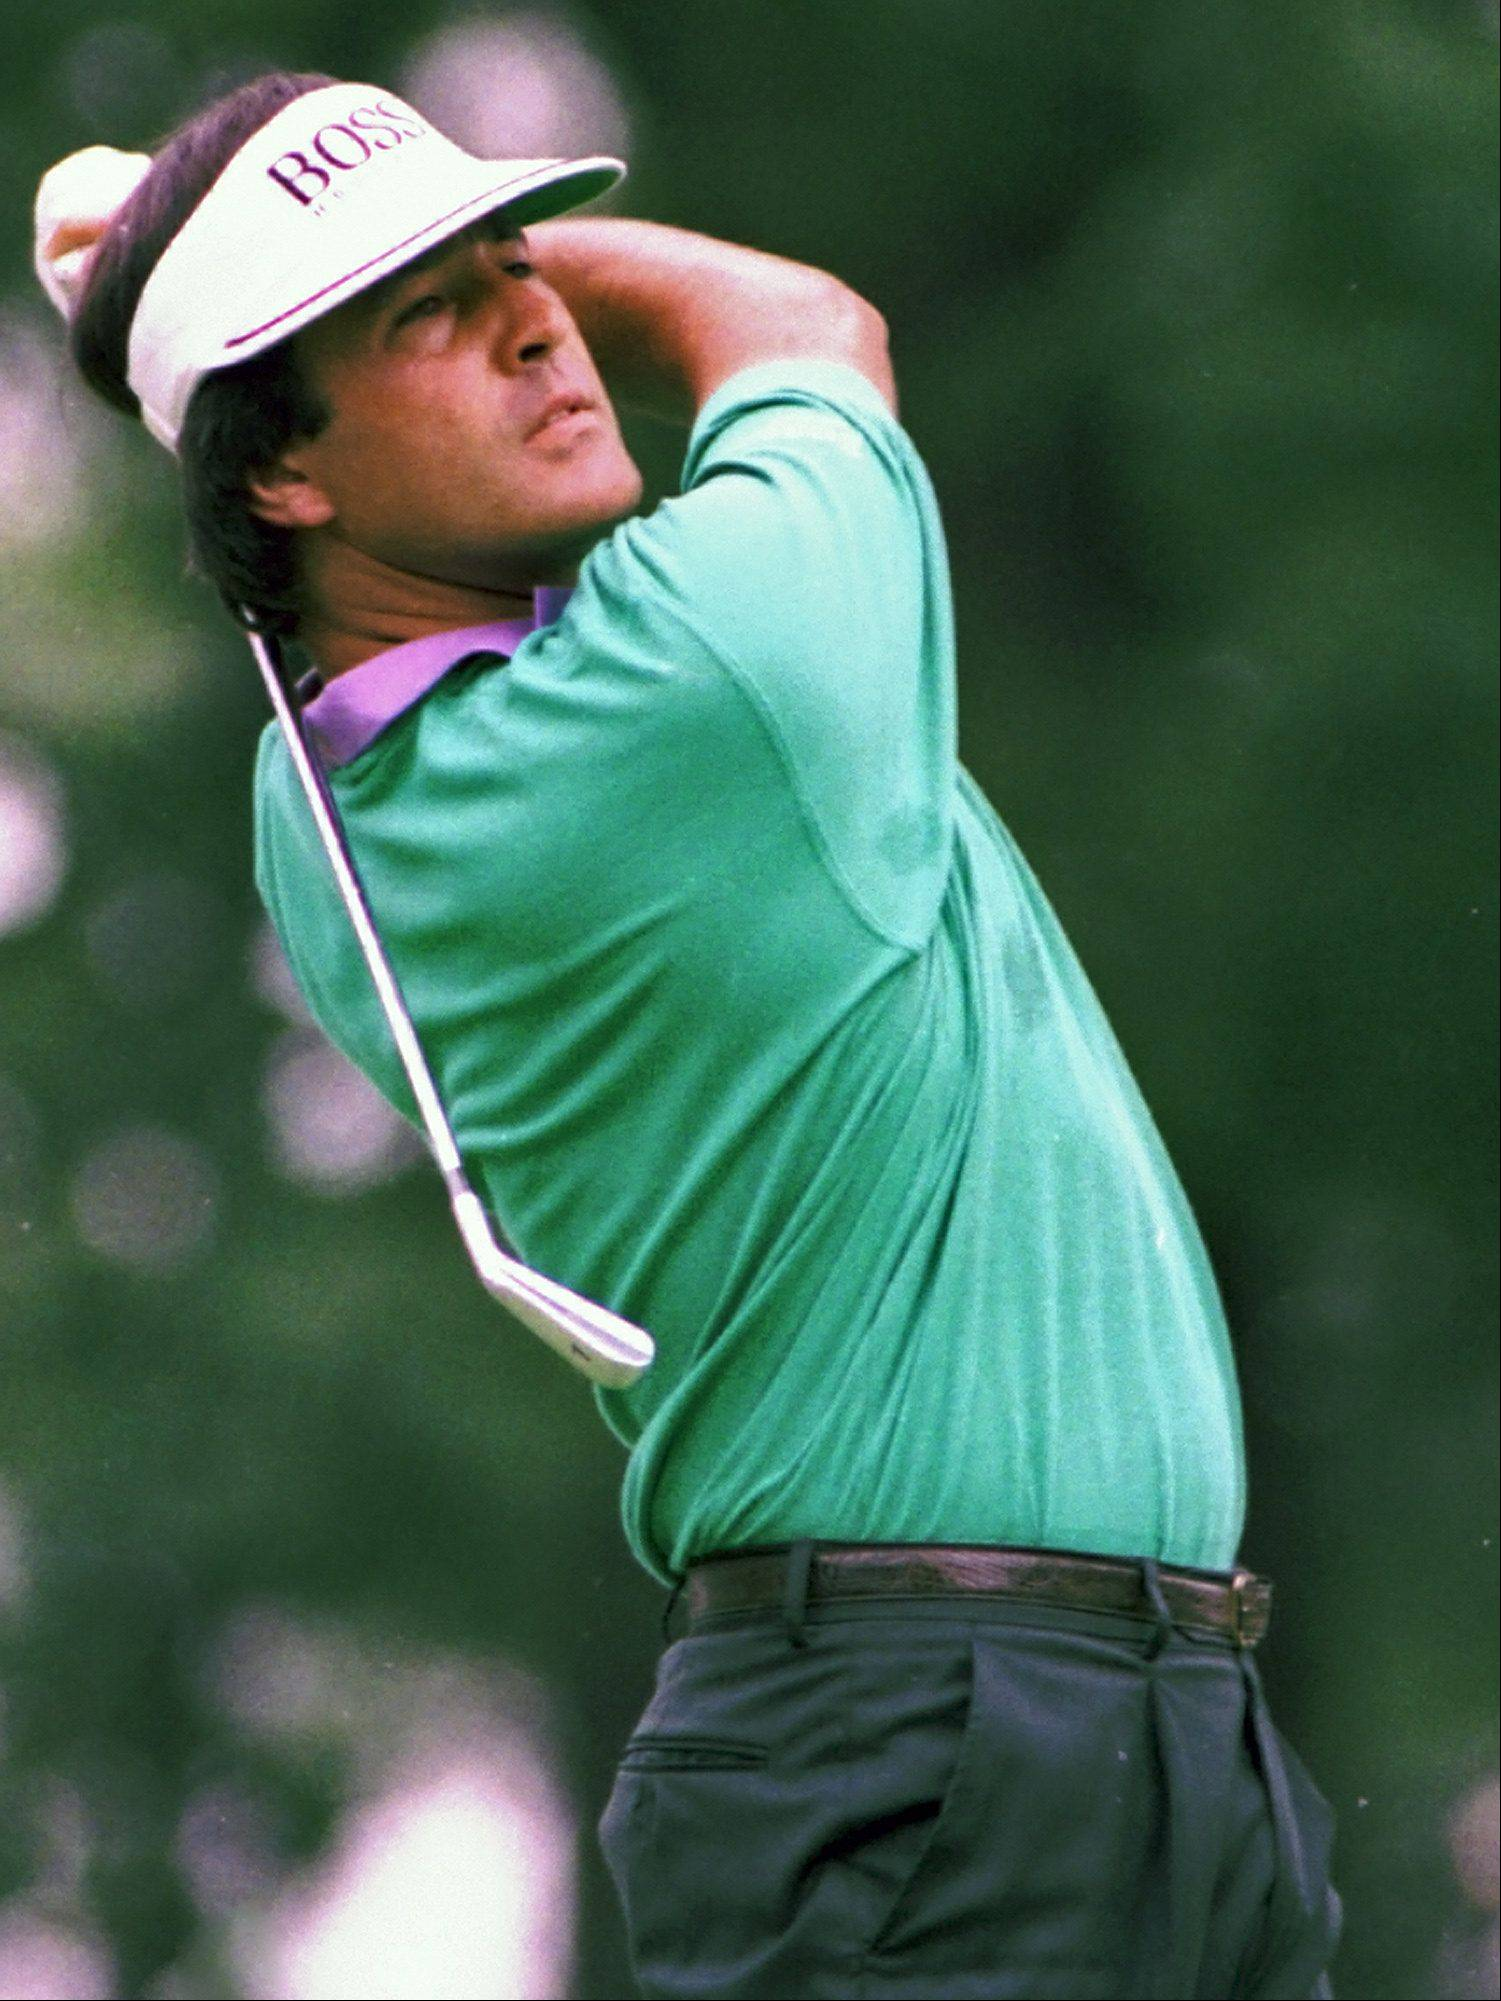 In this June 1990 file photo, Seve Ballesteros hits an iron off the tee during the U.S. Open golf tournament at Medinah Country Club in Medinah, Ill. Ballesteros died early Saturday, May 7, 2011, from complications of a cancerous brain tumor. He was 54.